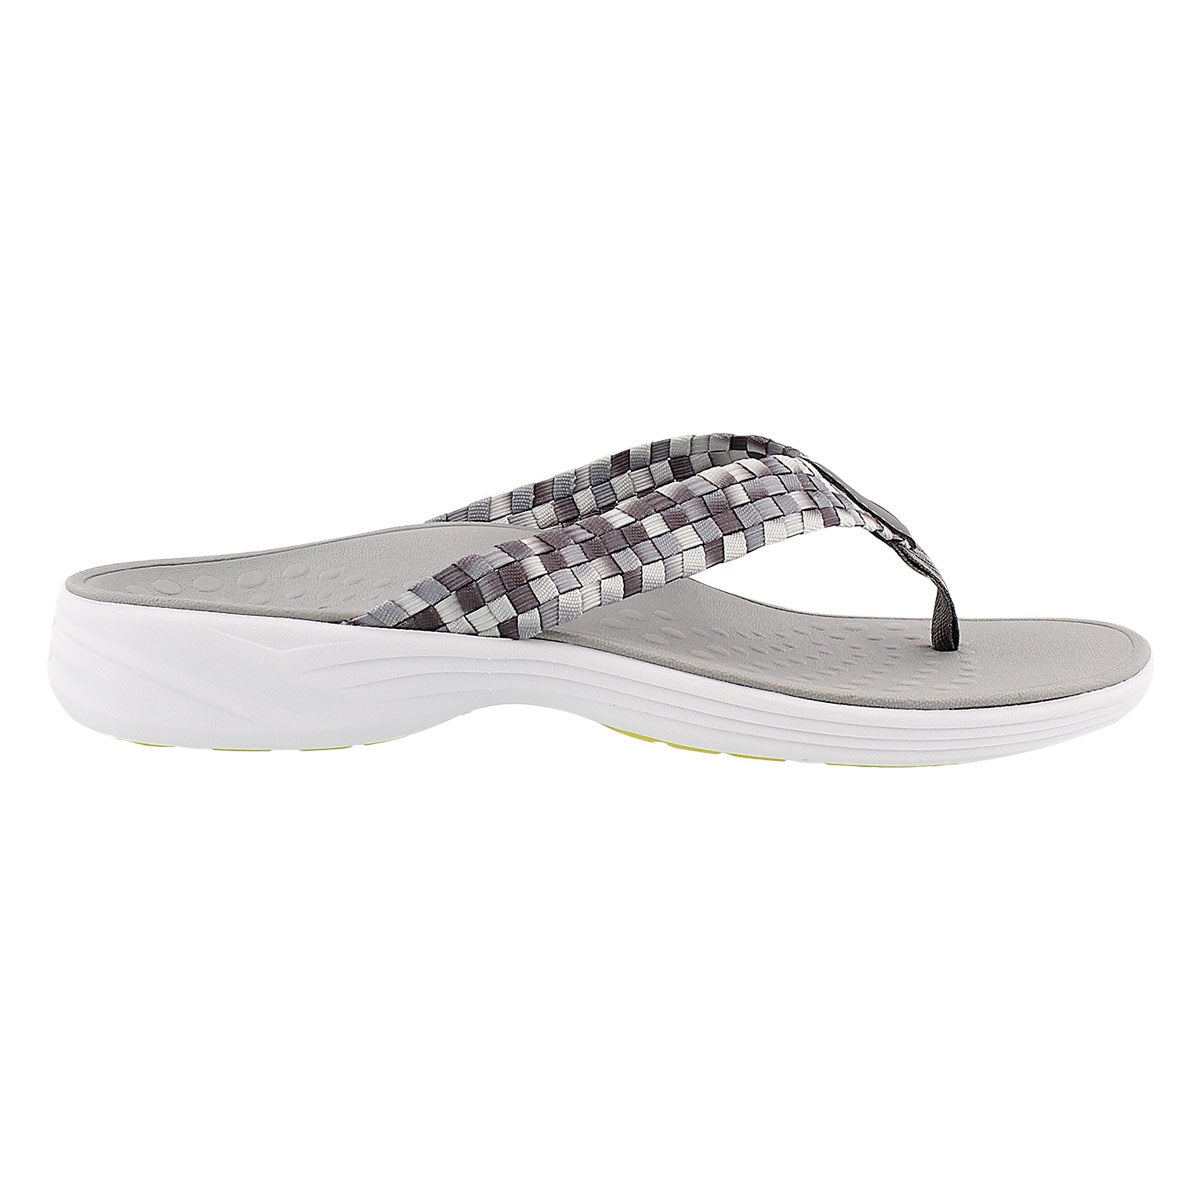 Lds Hazel char arch support thong sandal